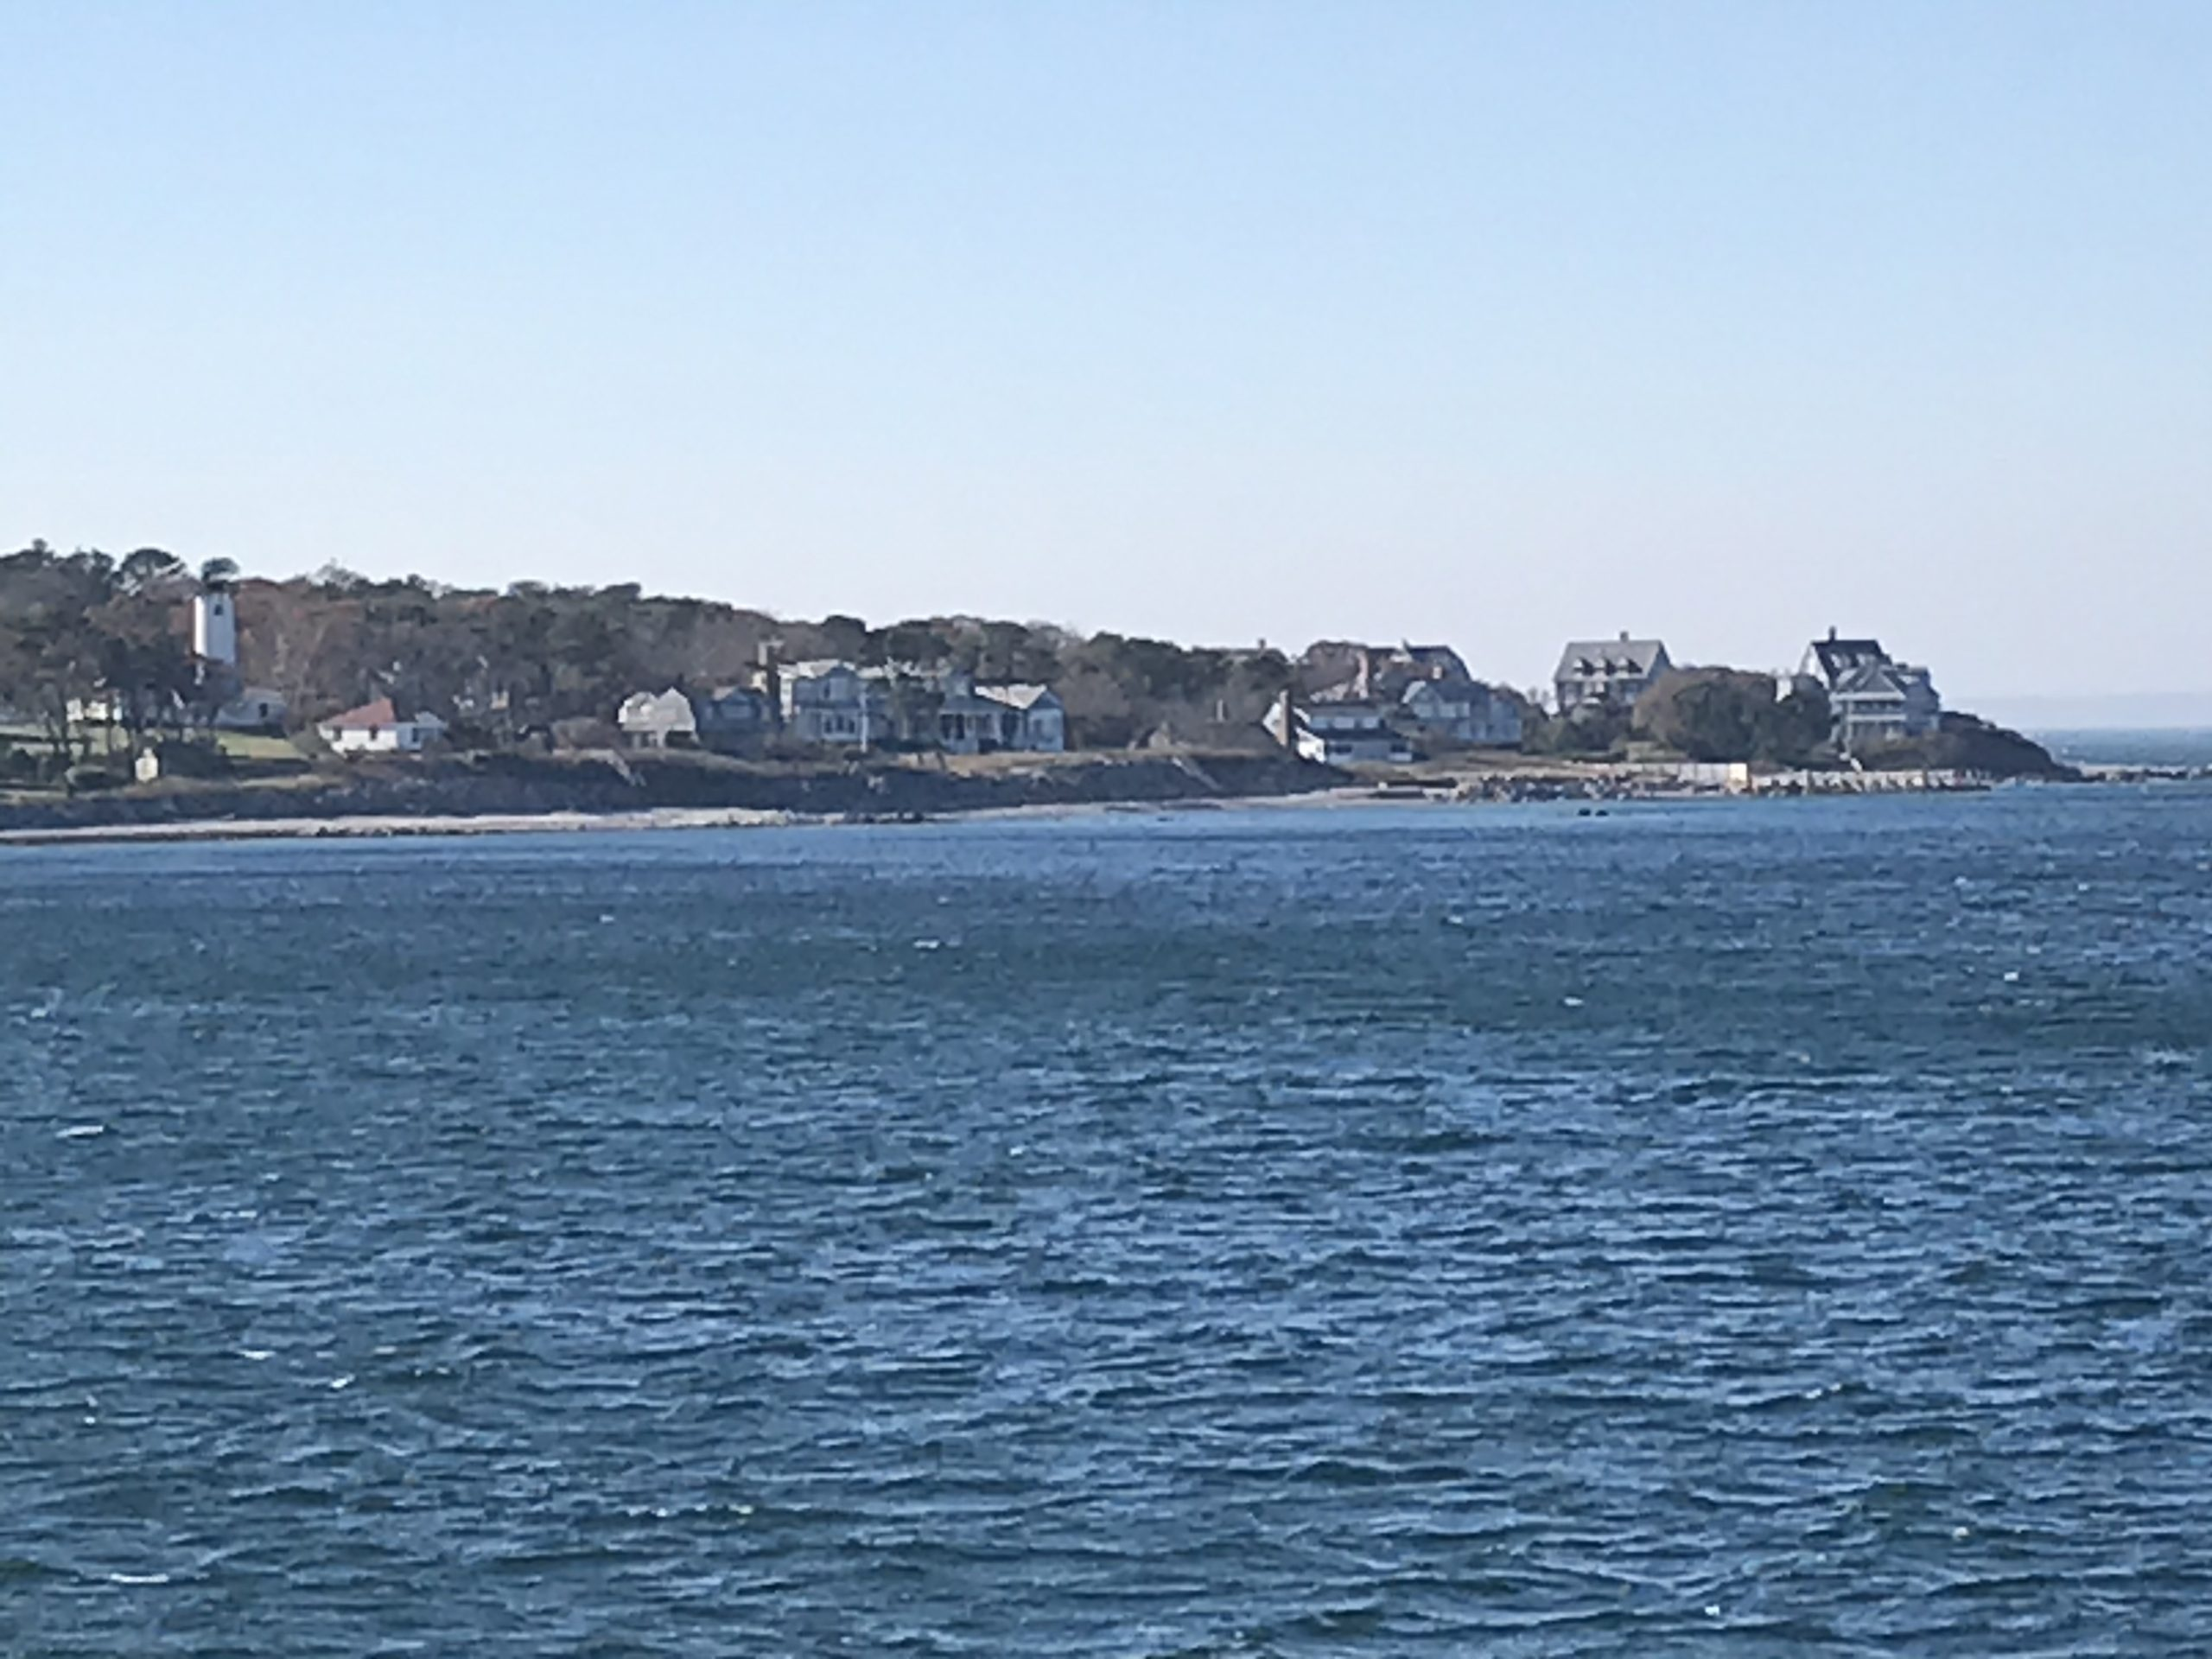 Approaching Vineyard Haven